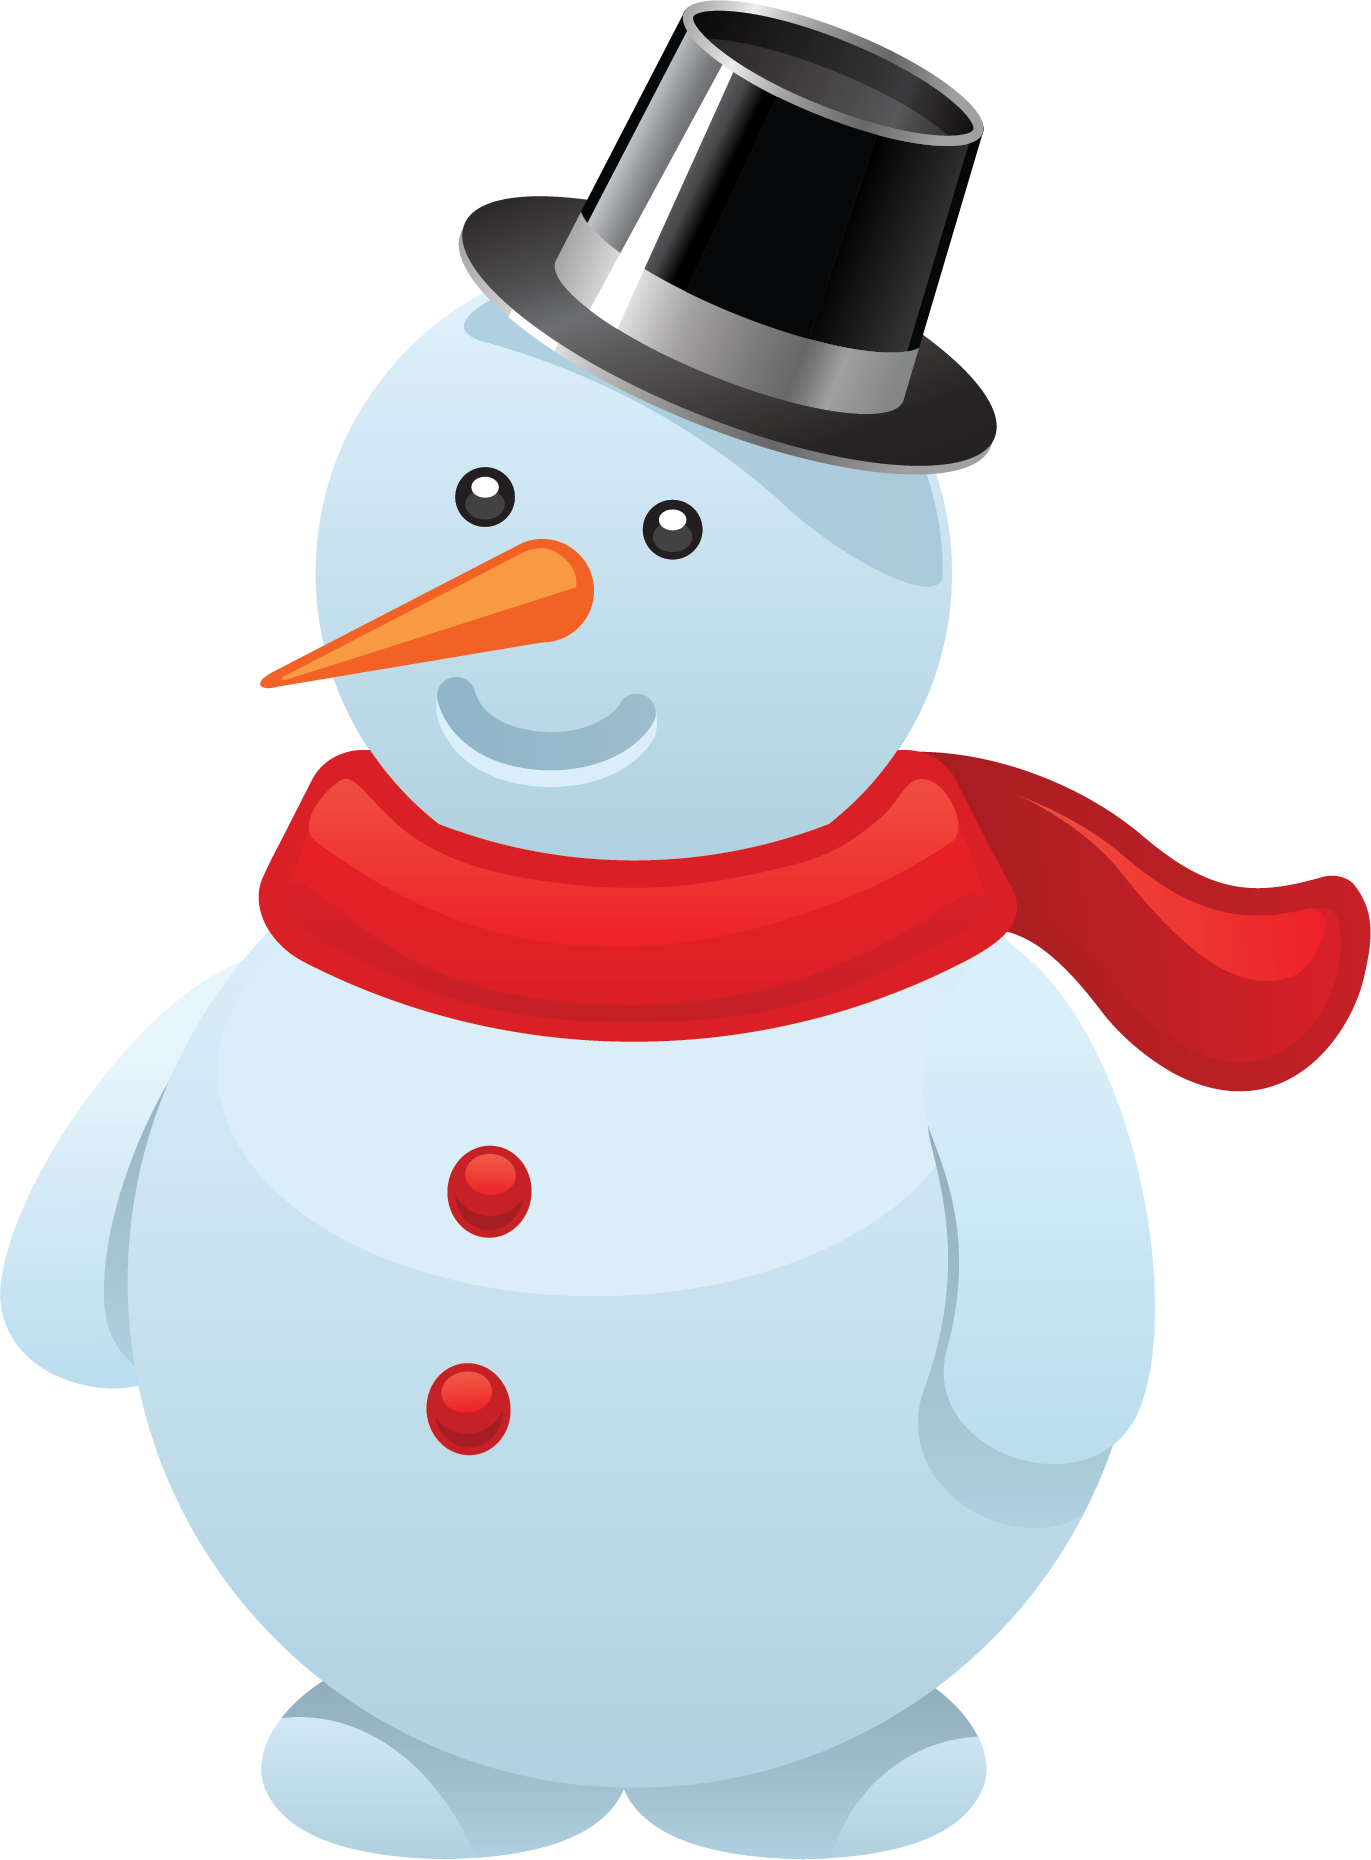 Holiday artwork clipart image stock Free winter holiday clip art - ClipartFox image stock